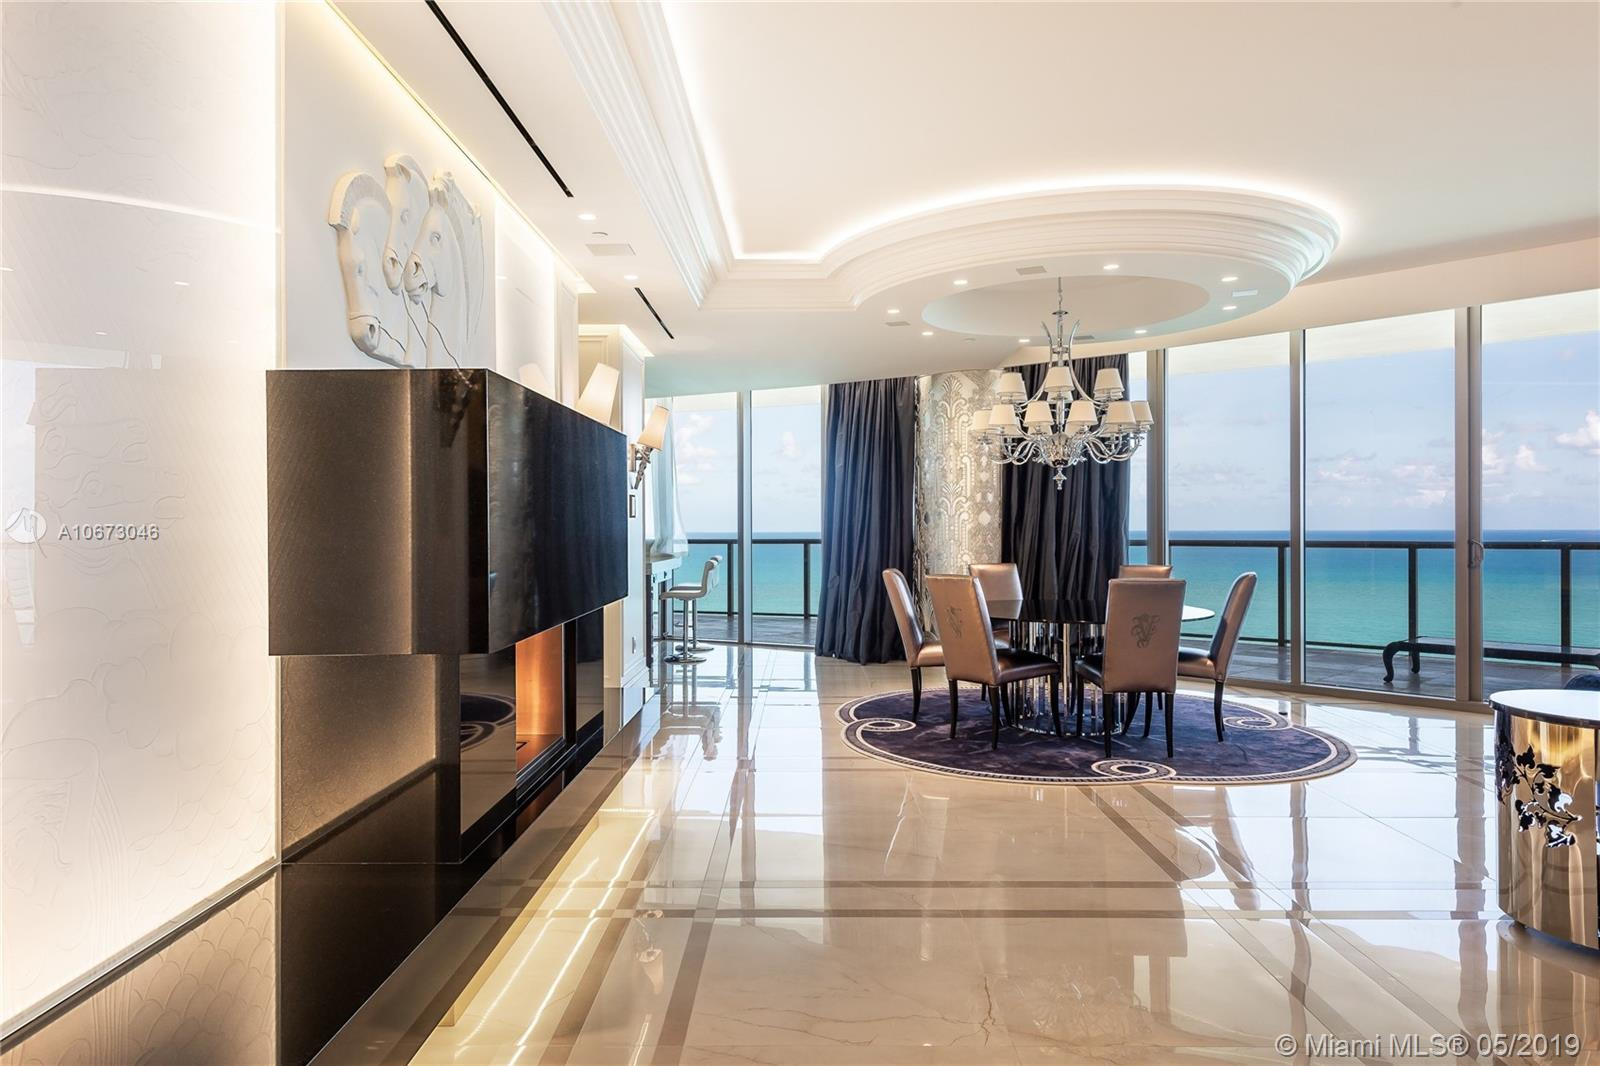 9703 Collins Ave, Unit #2600 Luxury Real Estate